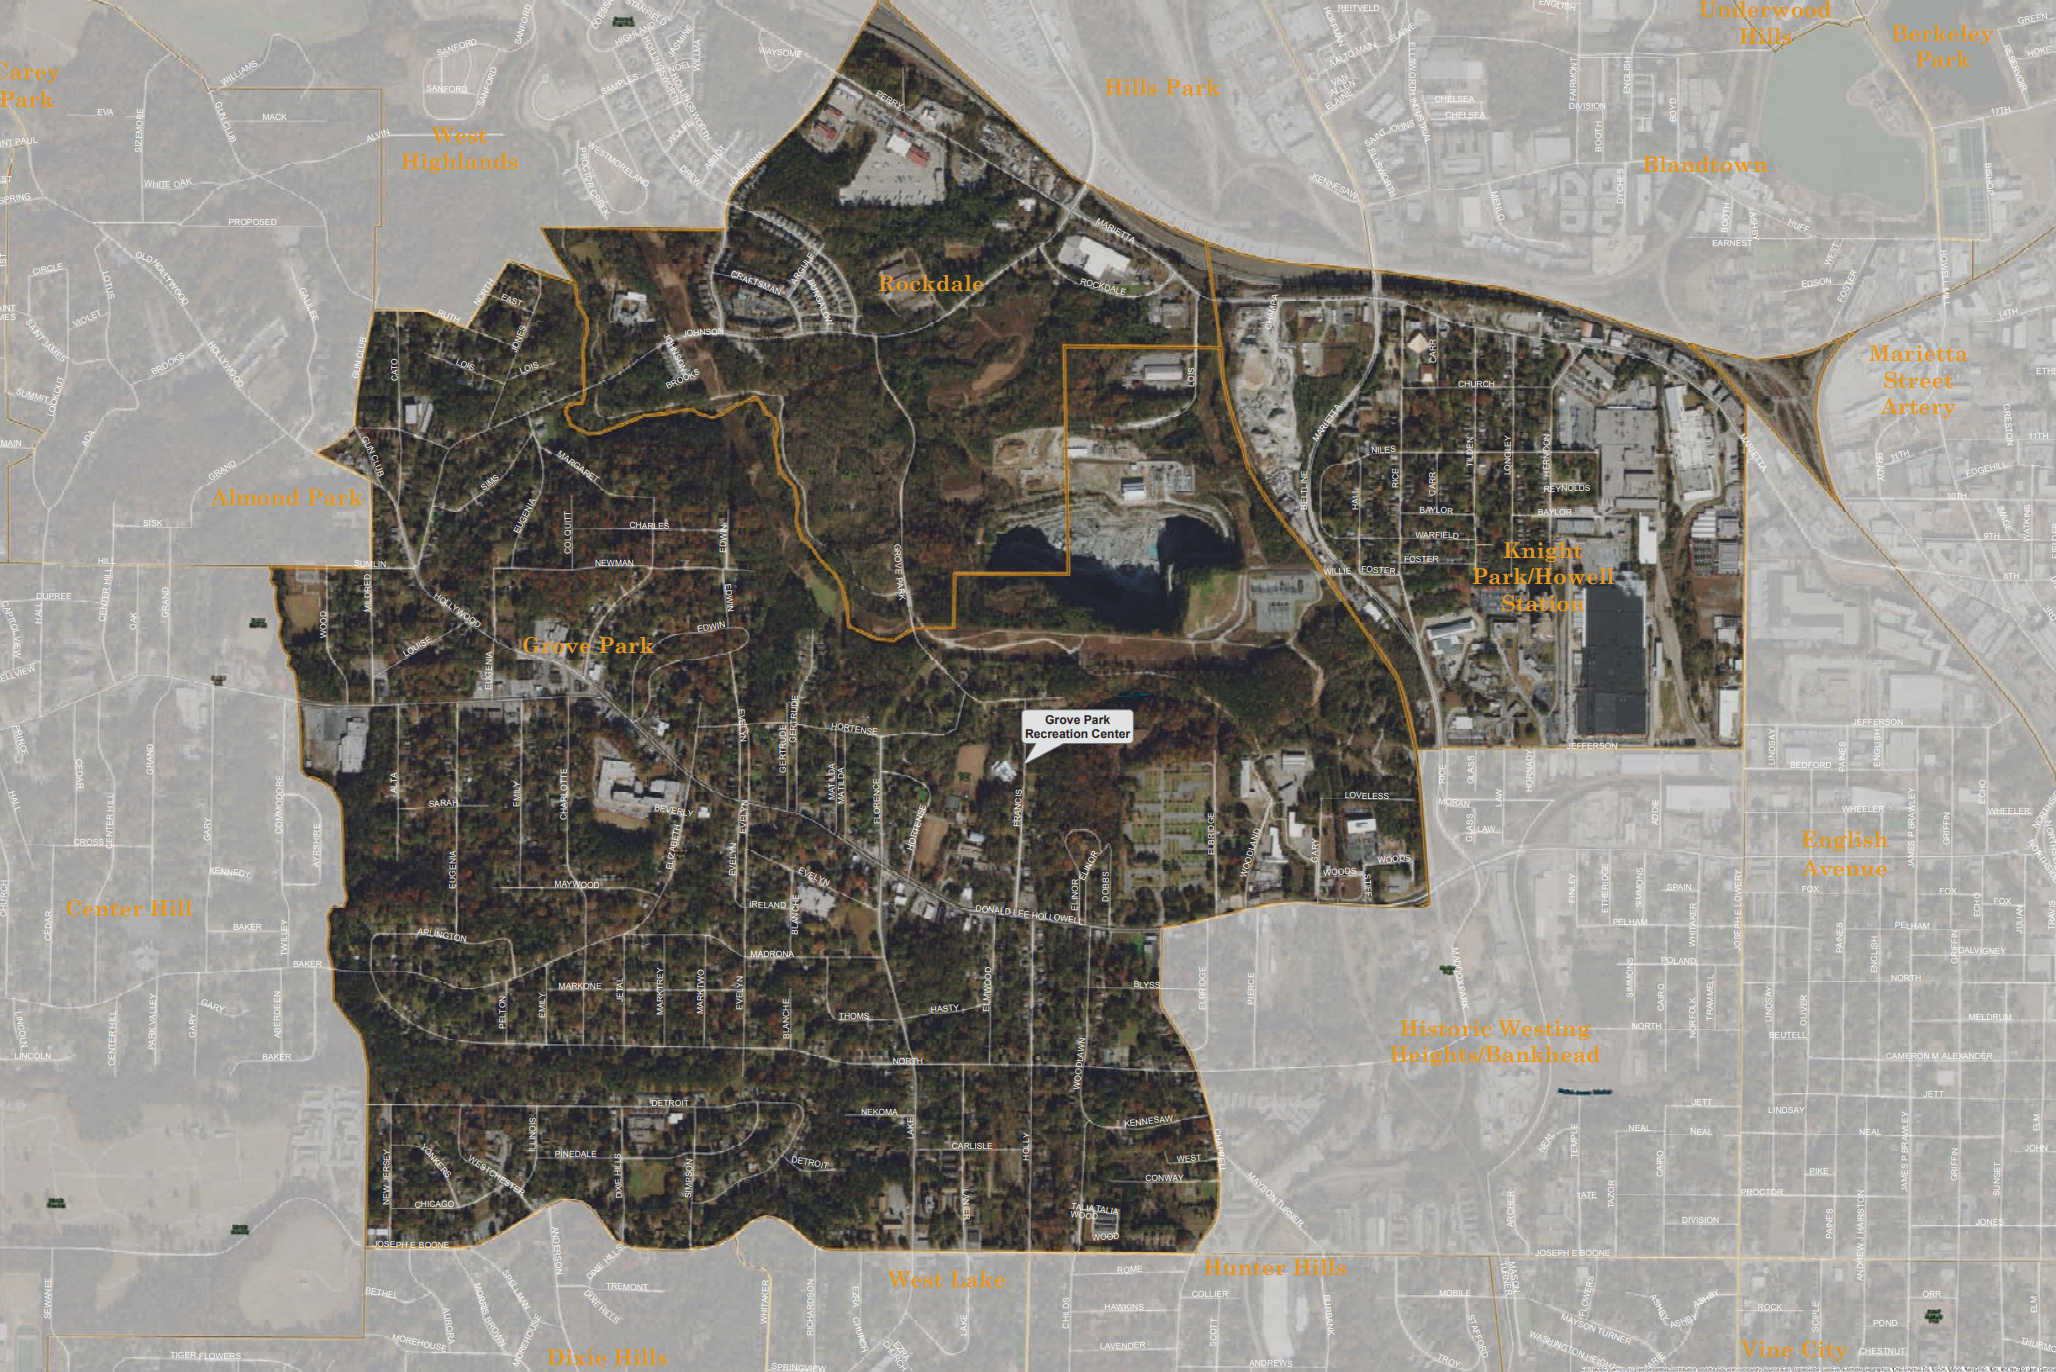 A map illustrates the area impacted by the development trends of the Westside Park.